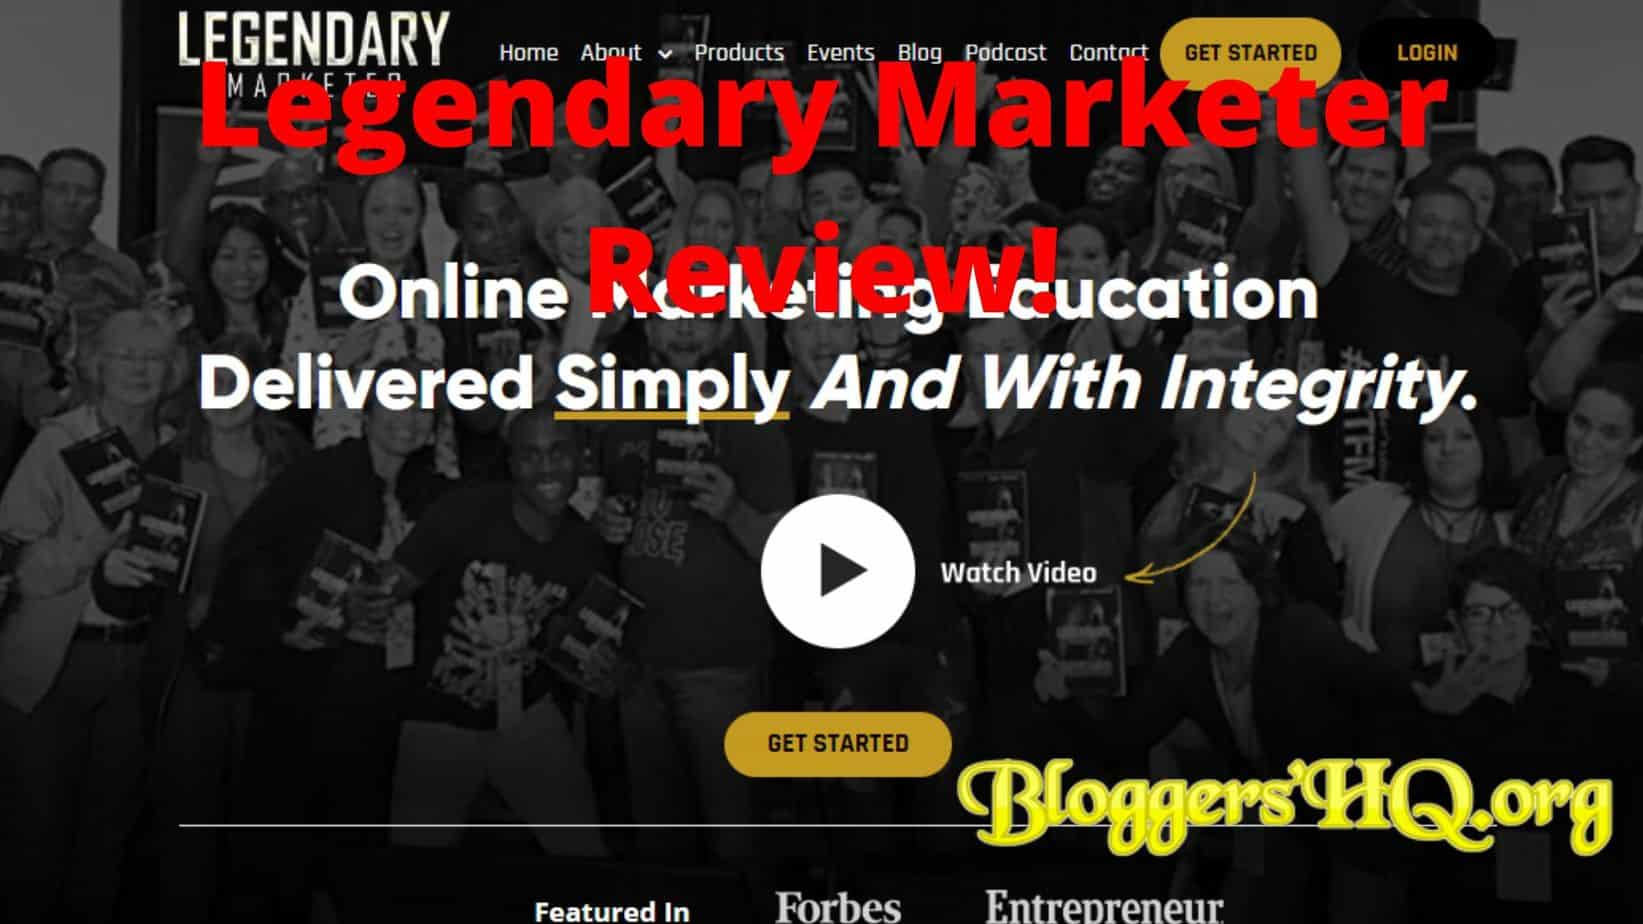 Discount Alternative To Legendary Marketer